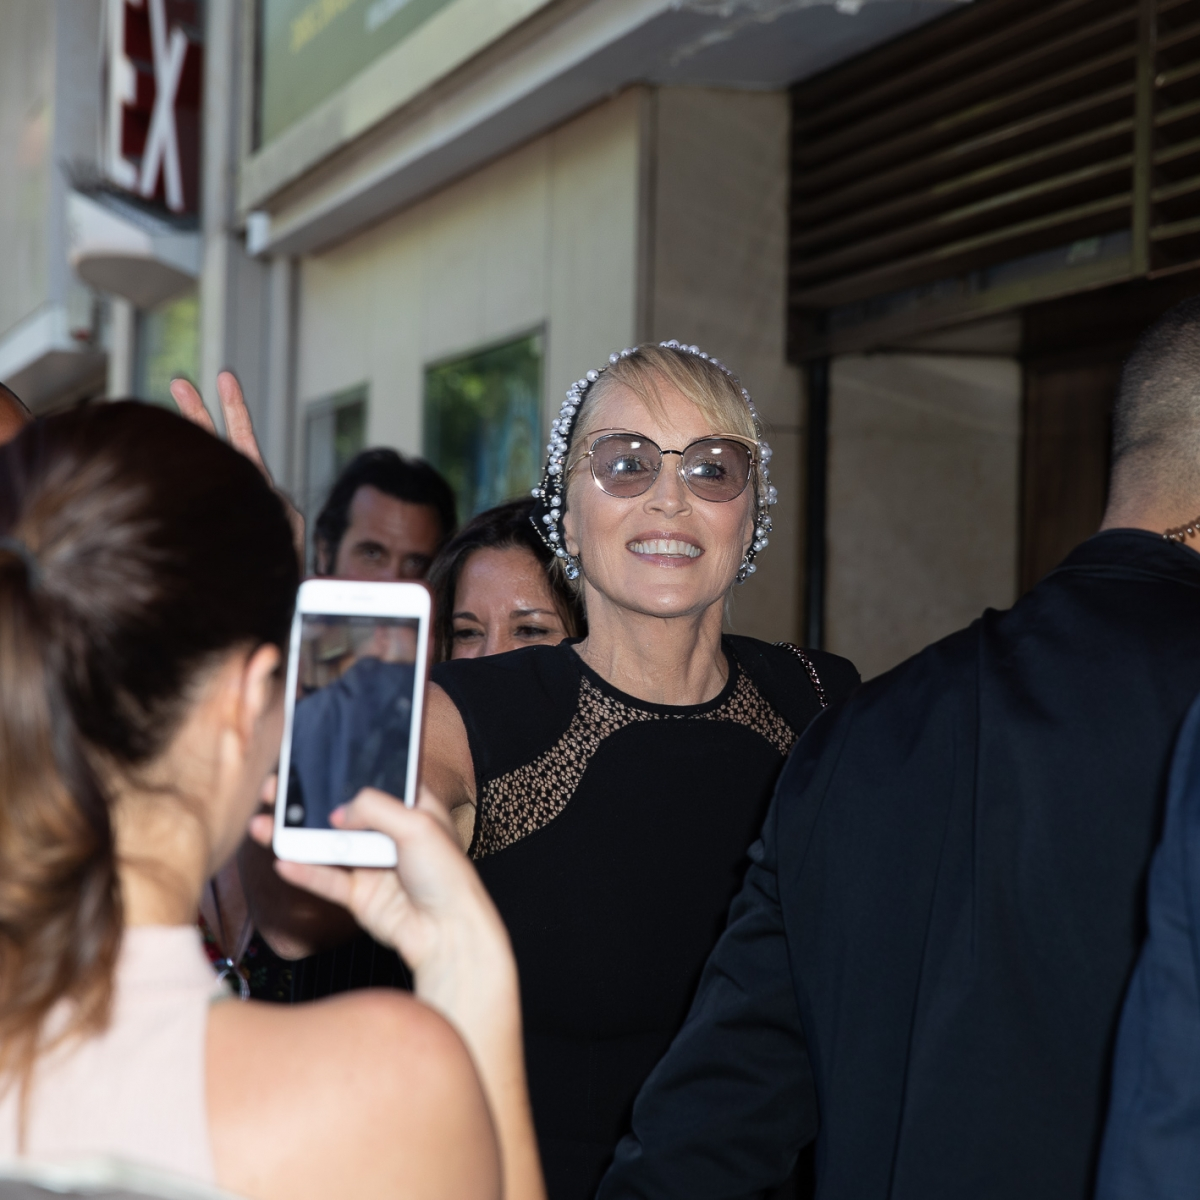 Sharon Stone - Projection du documentaire an undeniable voice lors du Paris Art and Movie Awards ,PAMA au Grand Rex à Paris Crédit photo: © MARWAN MOUSSA / 2018